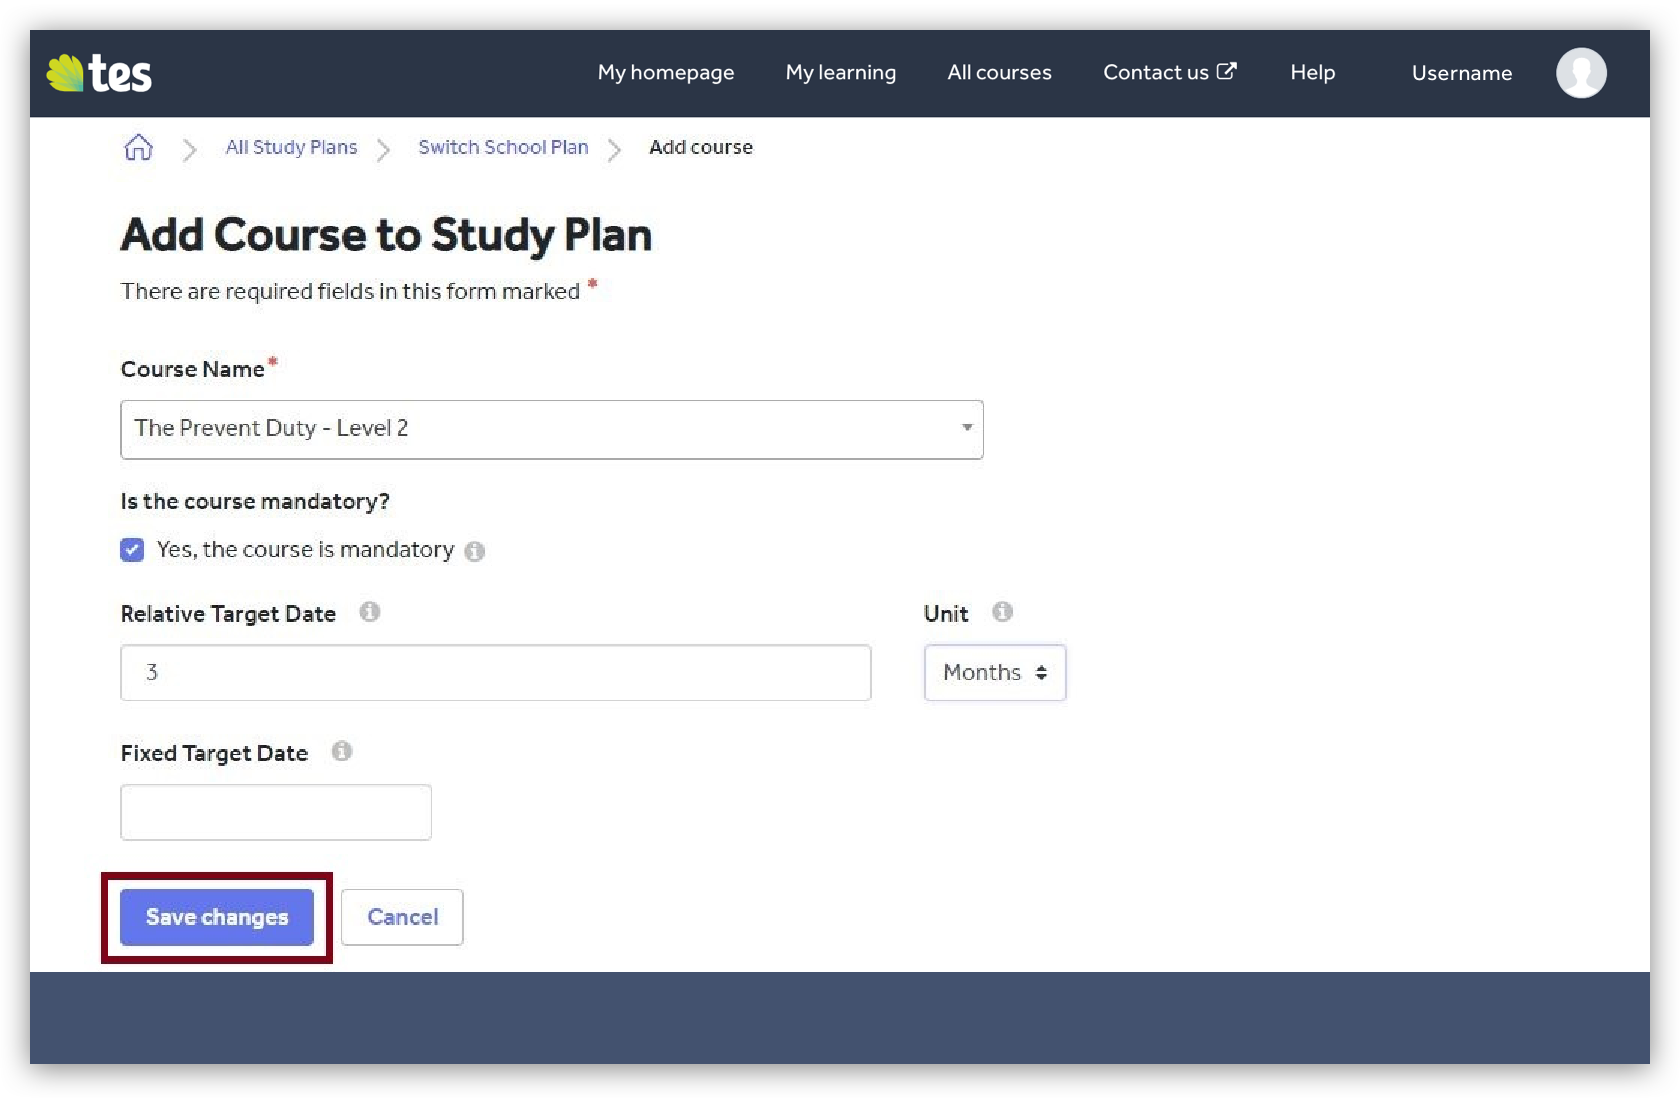 Add courses to a study plan image